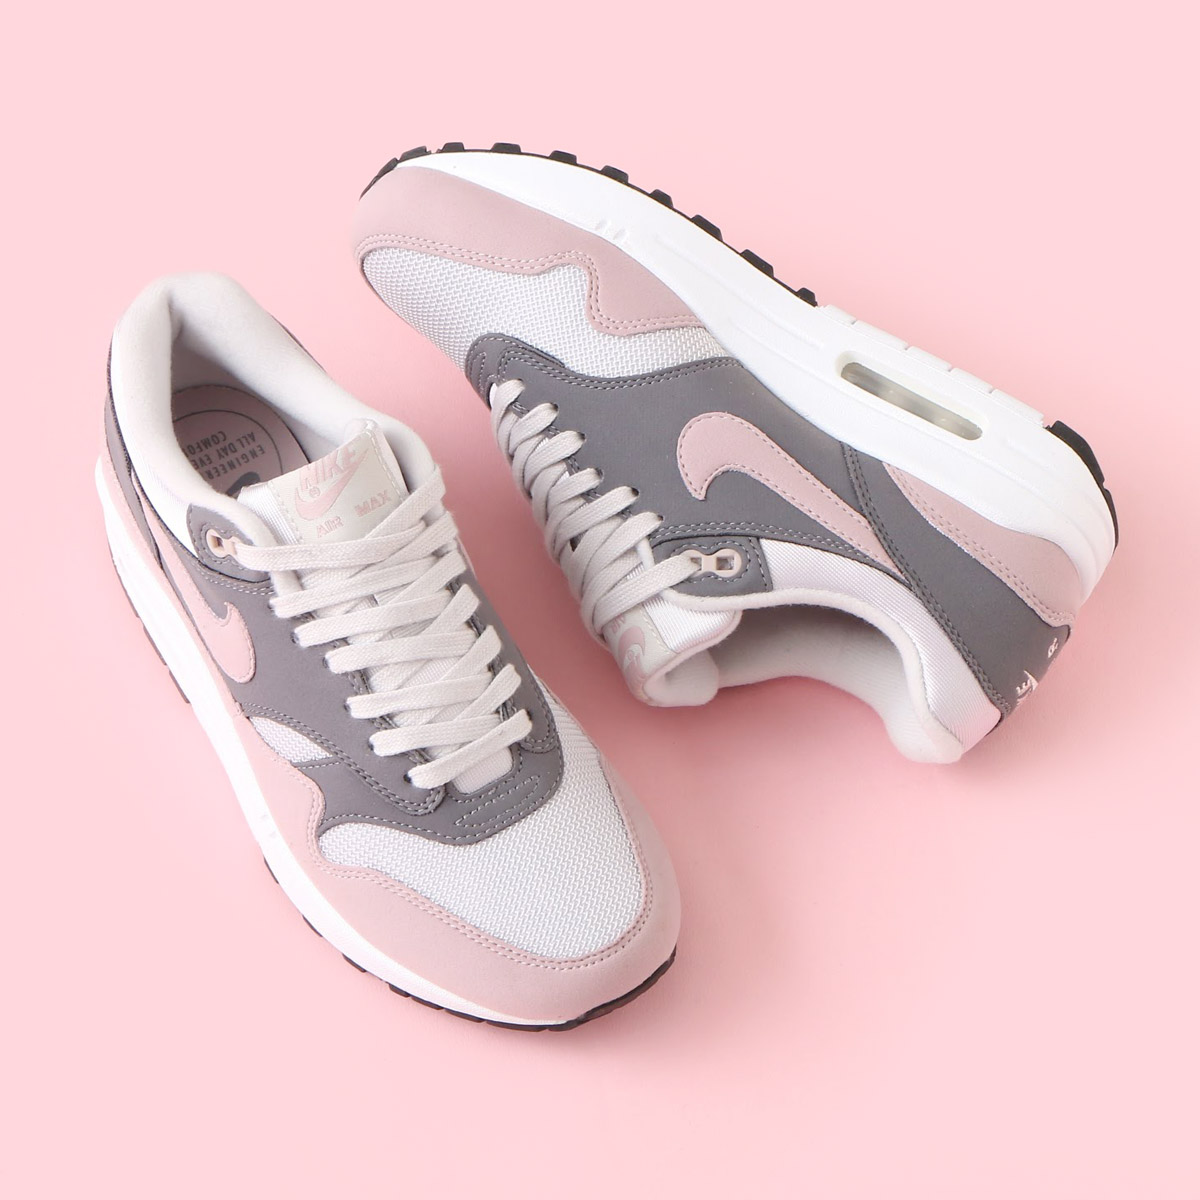 separation shoes 6703a 1434b NIKE WMNS AIR MAX 1 (Nike women Air Max 1) (VAST GREY PARTICLE  ROSE-GUNSMOKE-BLACK) 18SP-S